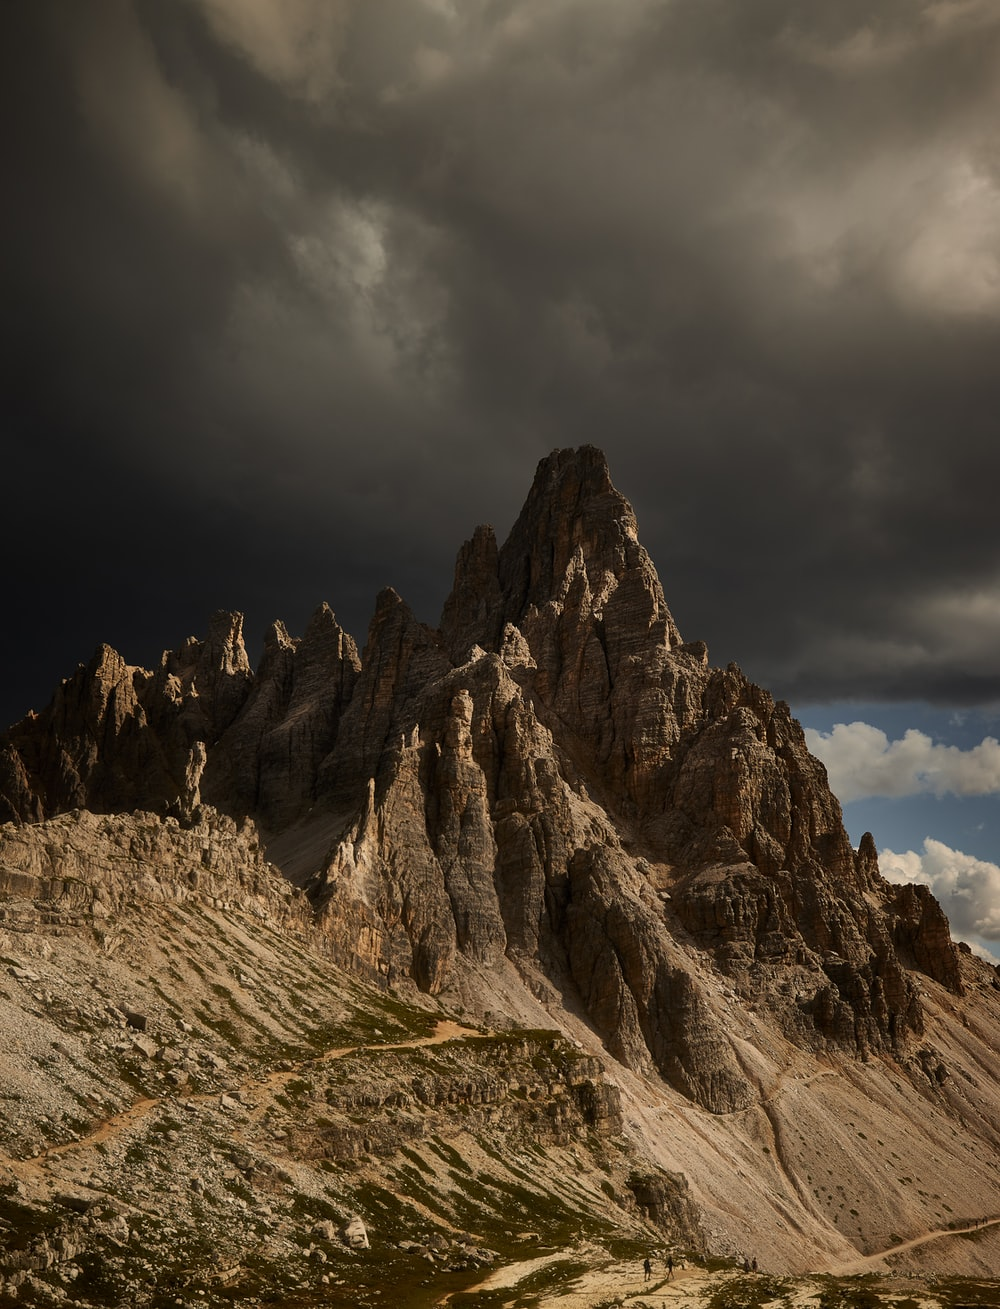 brown rocky mountain under cloudy sky during daytime